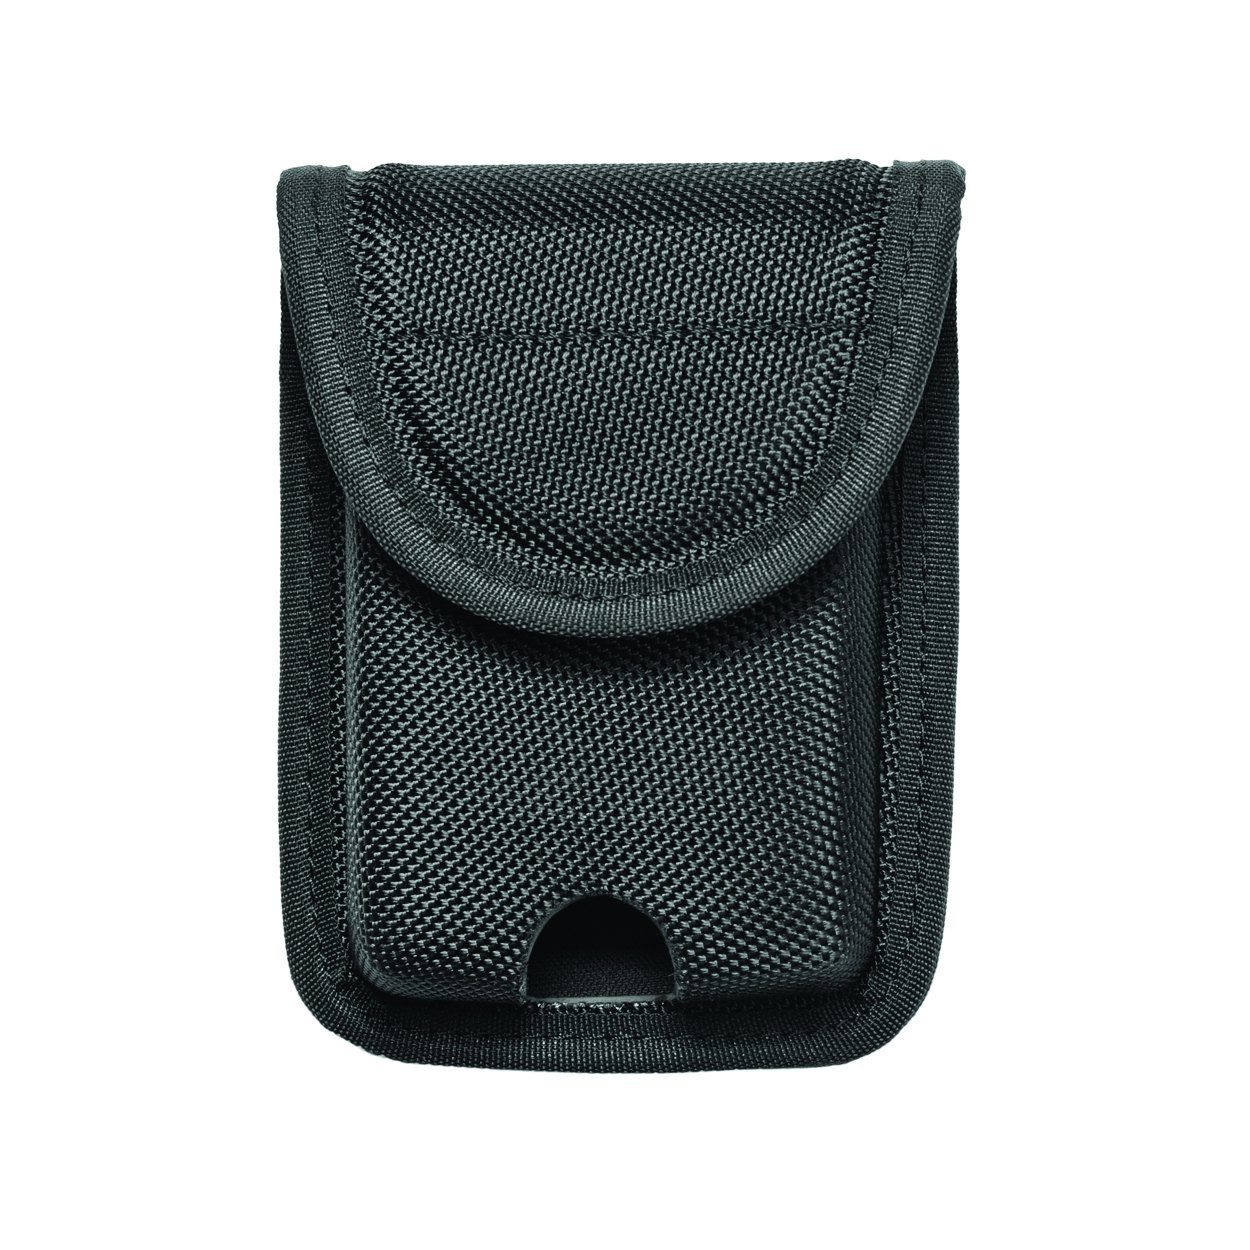 Smart Phone Case - Medium - Closed - Ballistic